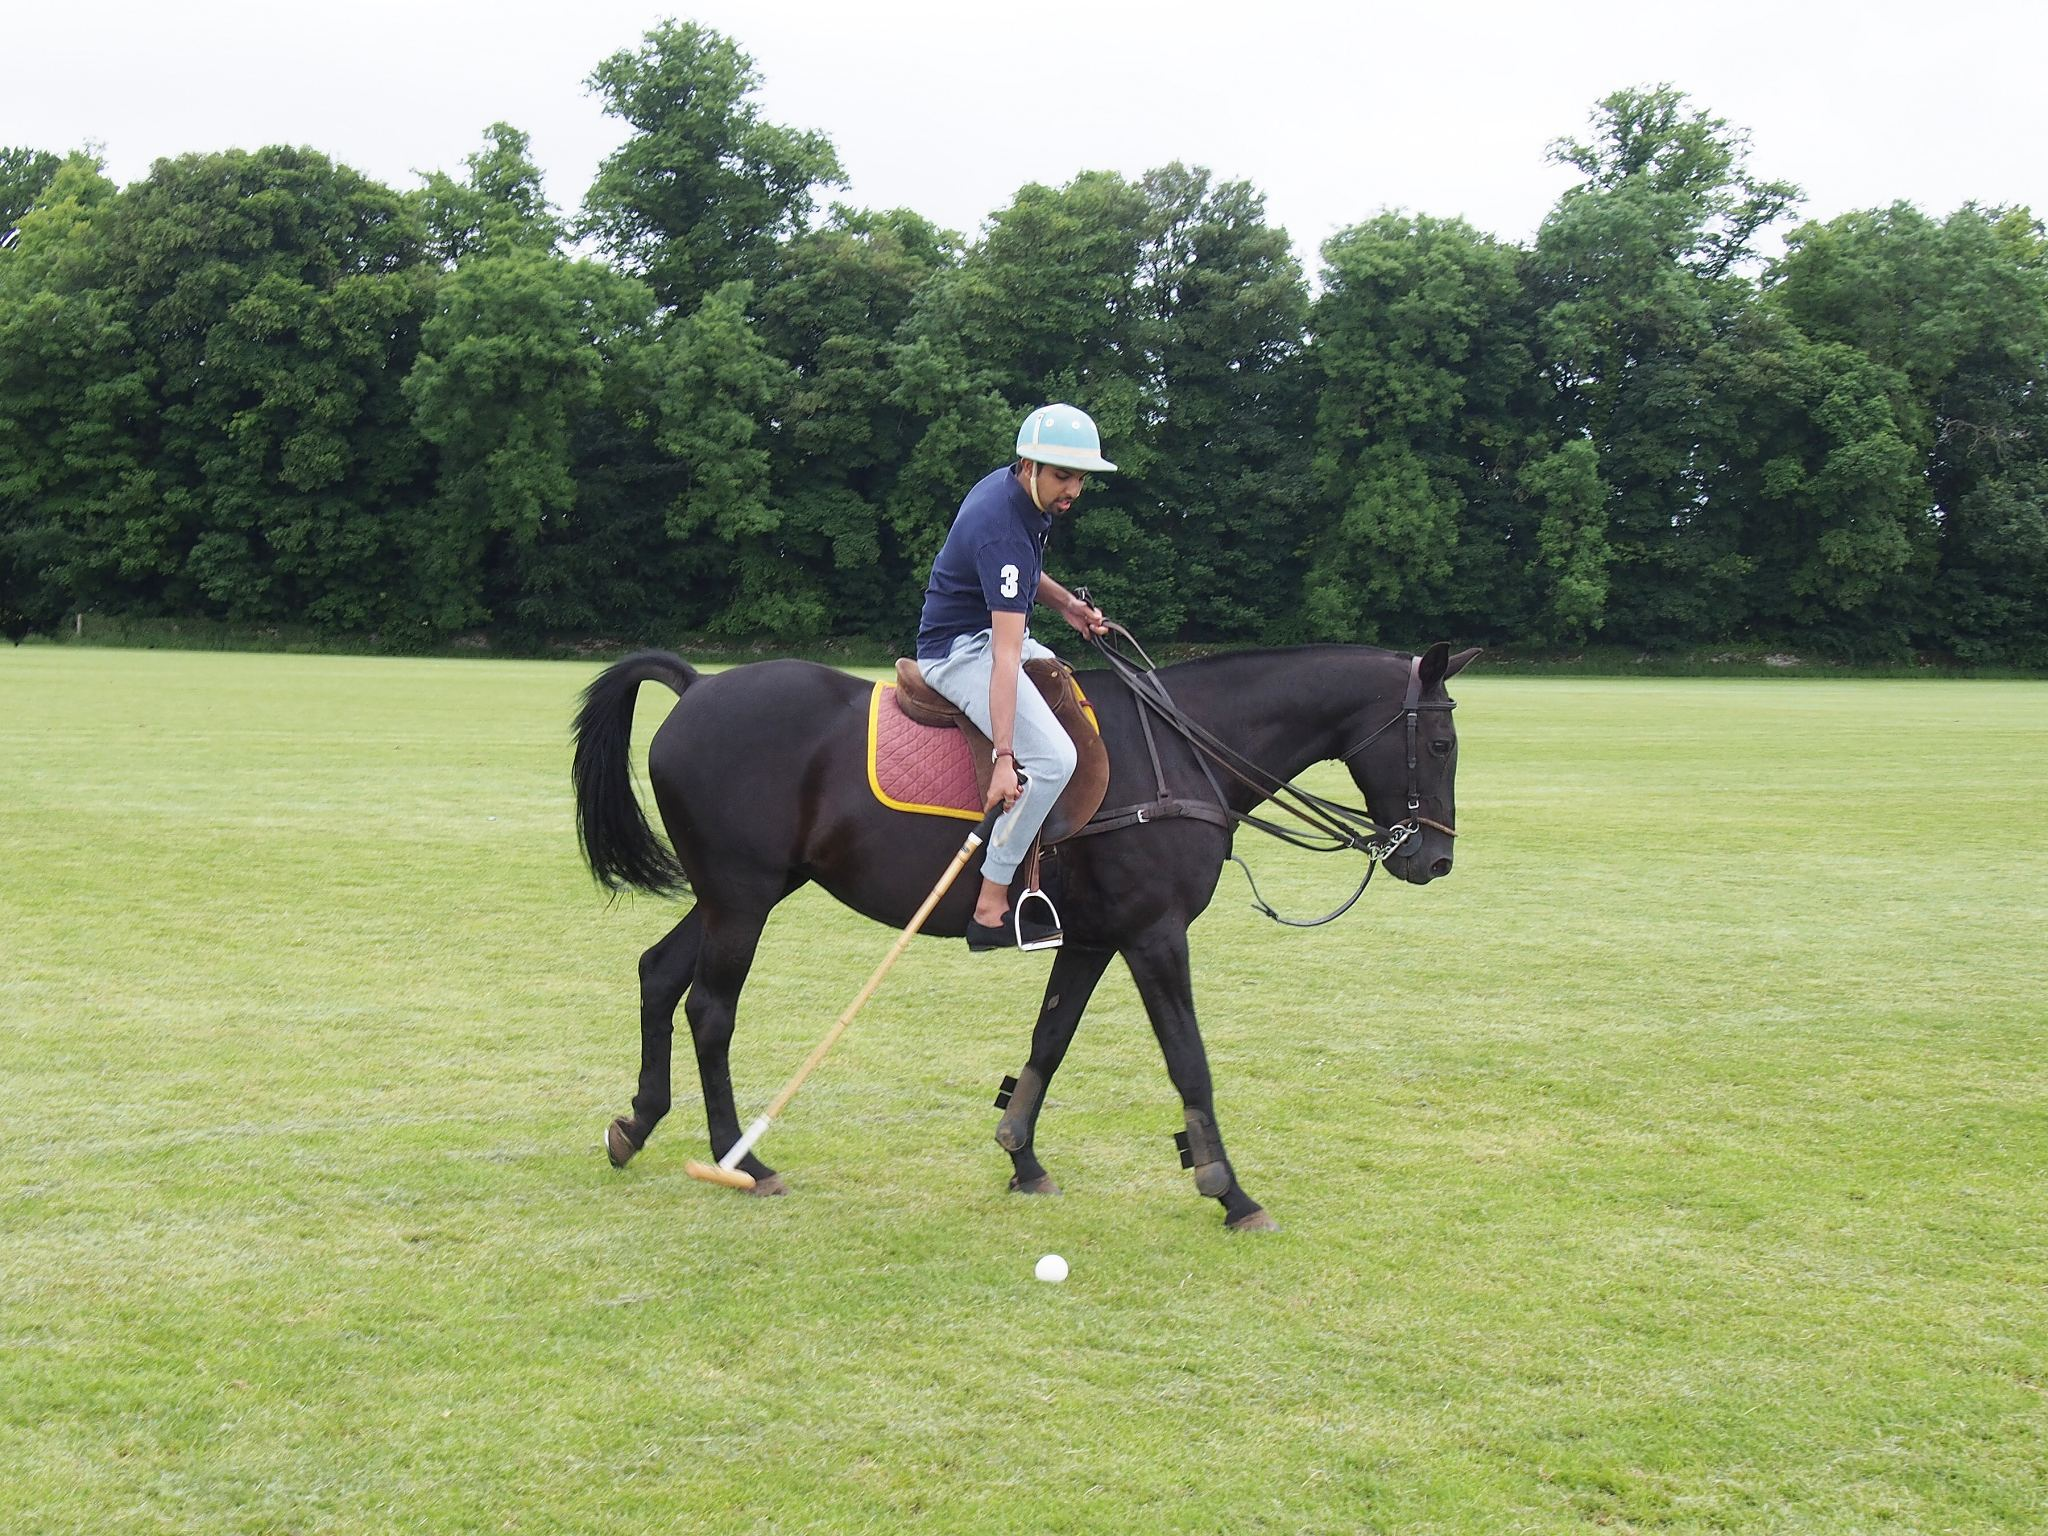 Cirencester Polo Club, The Cotswold - Weekend Getaways